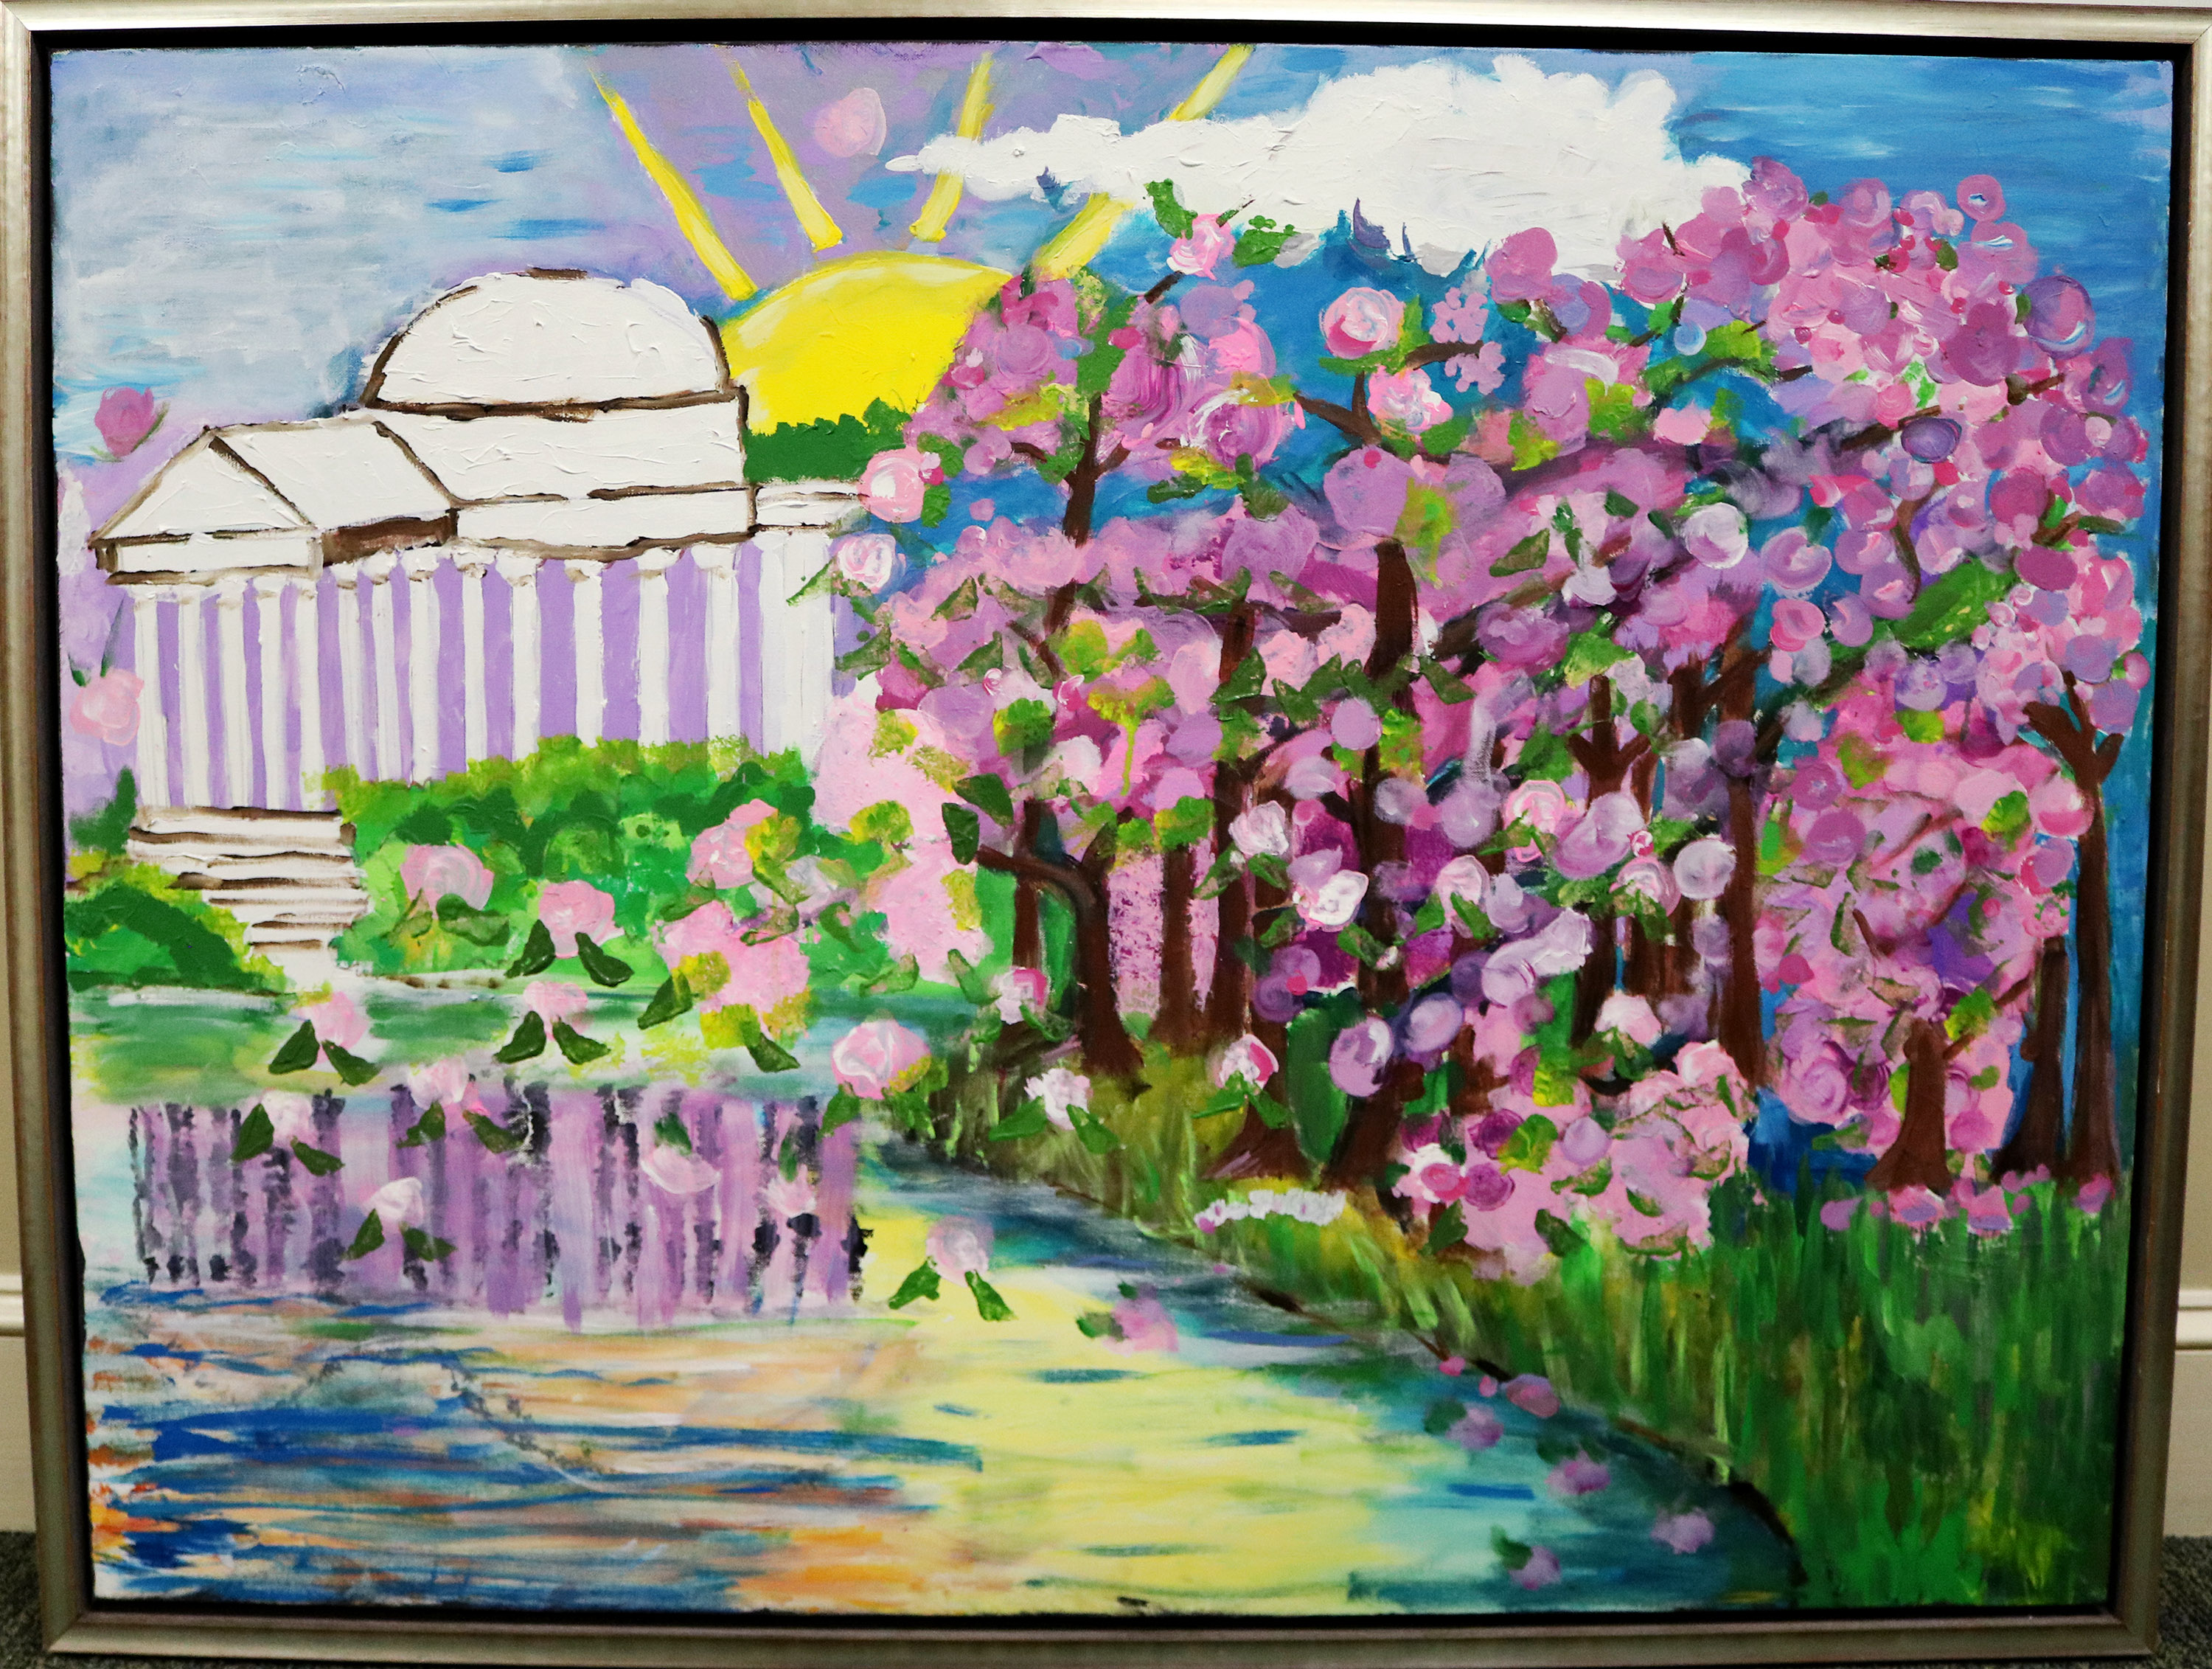 CHERRY BLOSSOMS OF HOPE